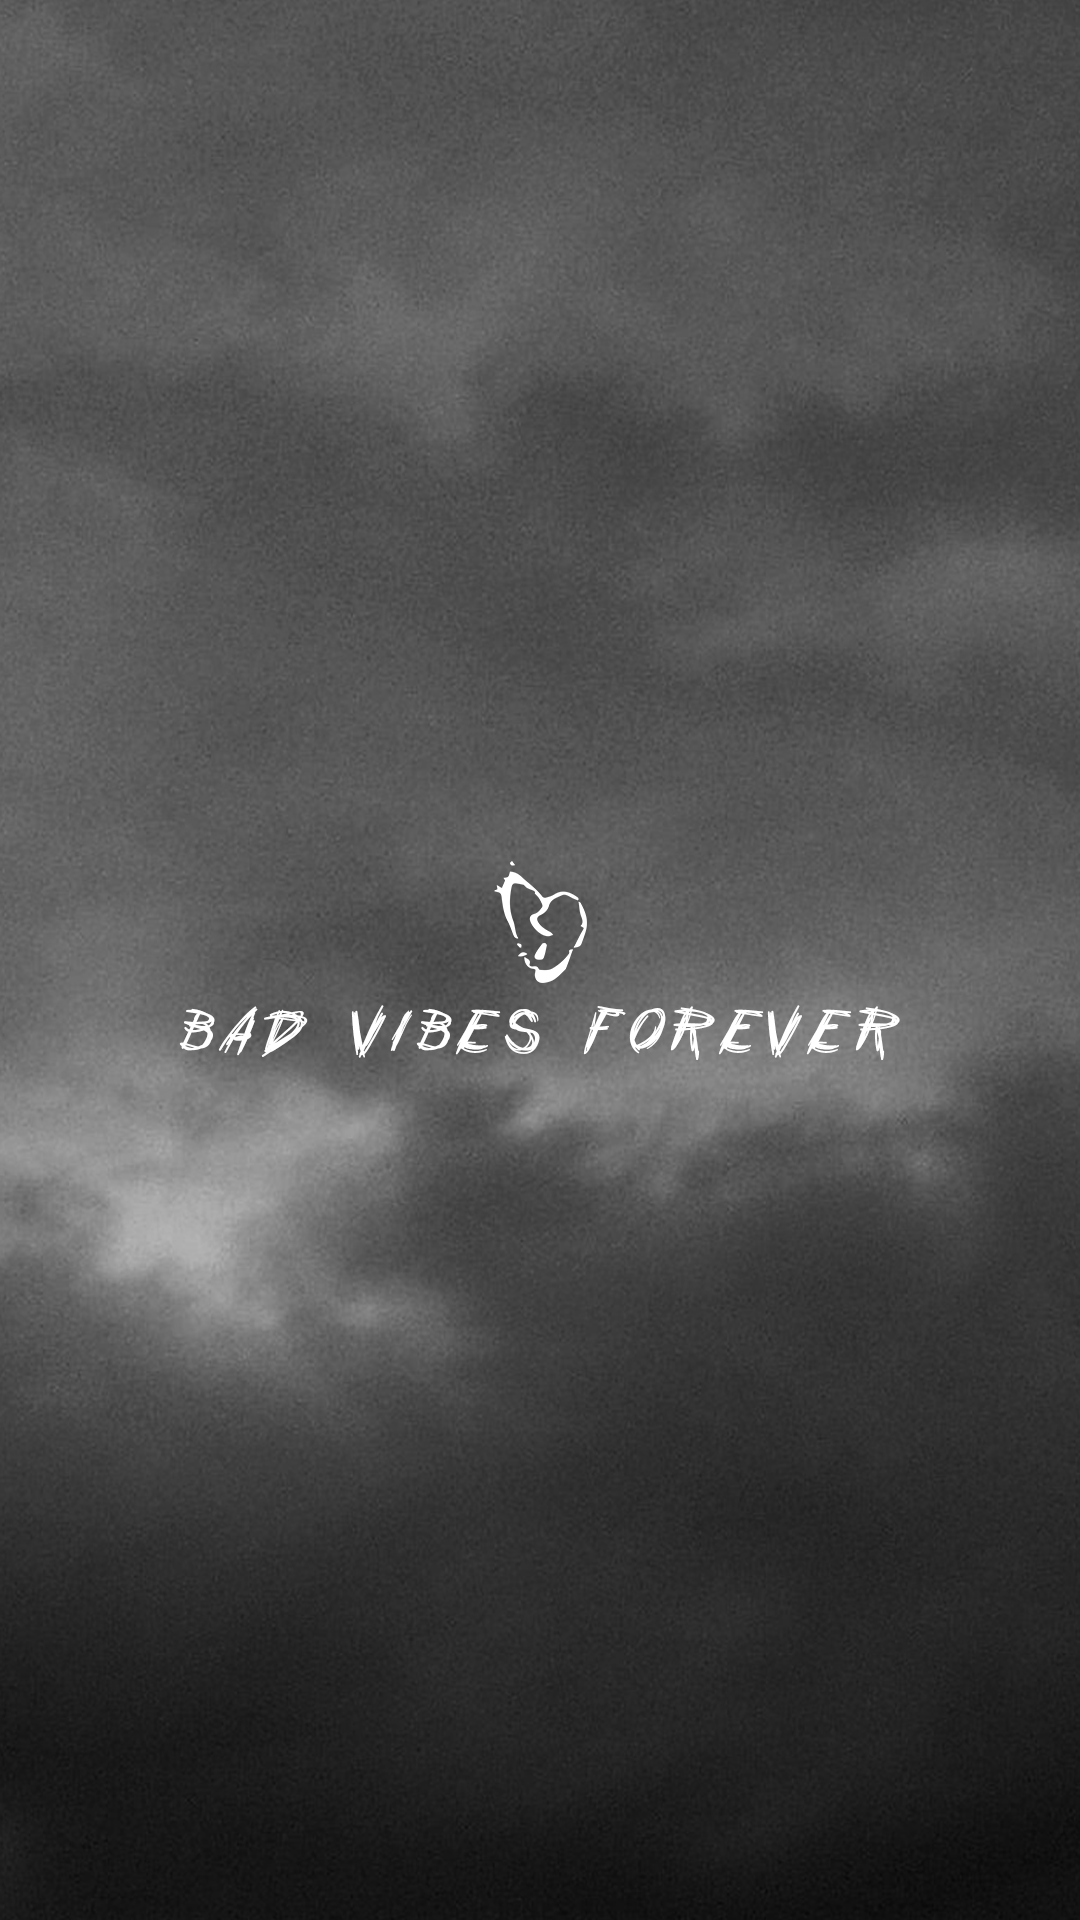 Bad Vibes Forever Desktop Wallpaper 1920x1080 XXXTENTACION 1080x1920